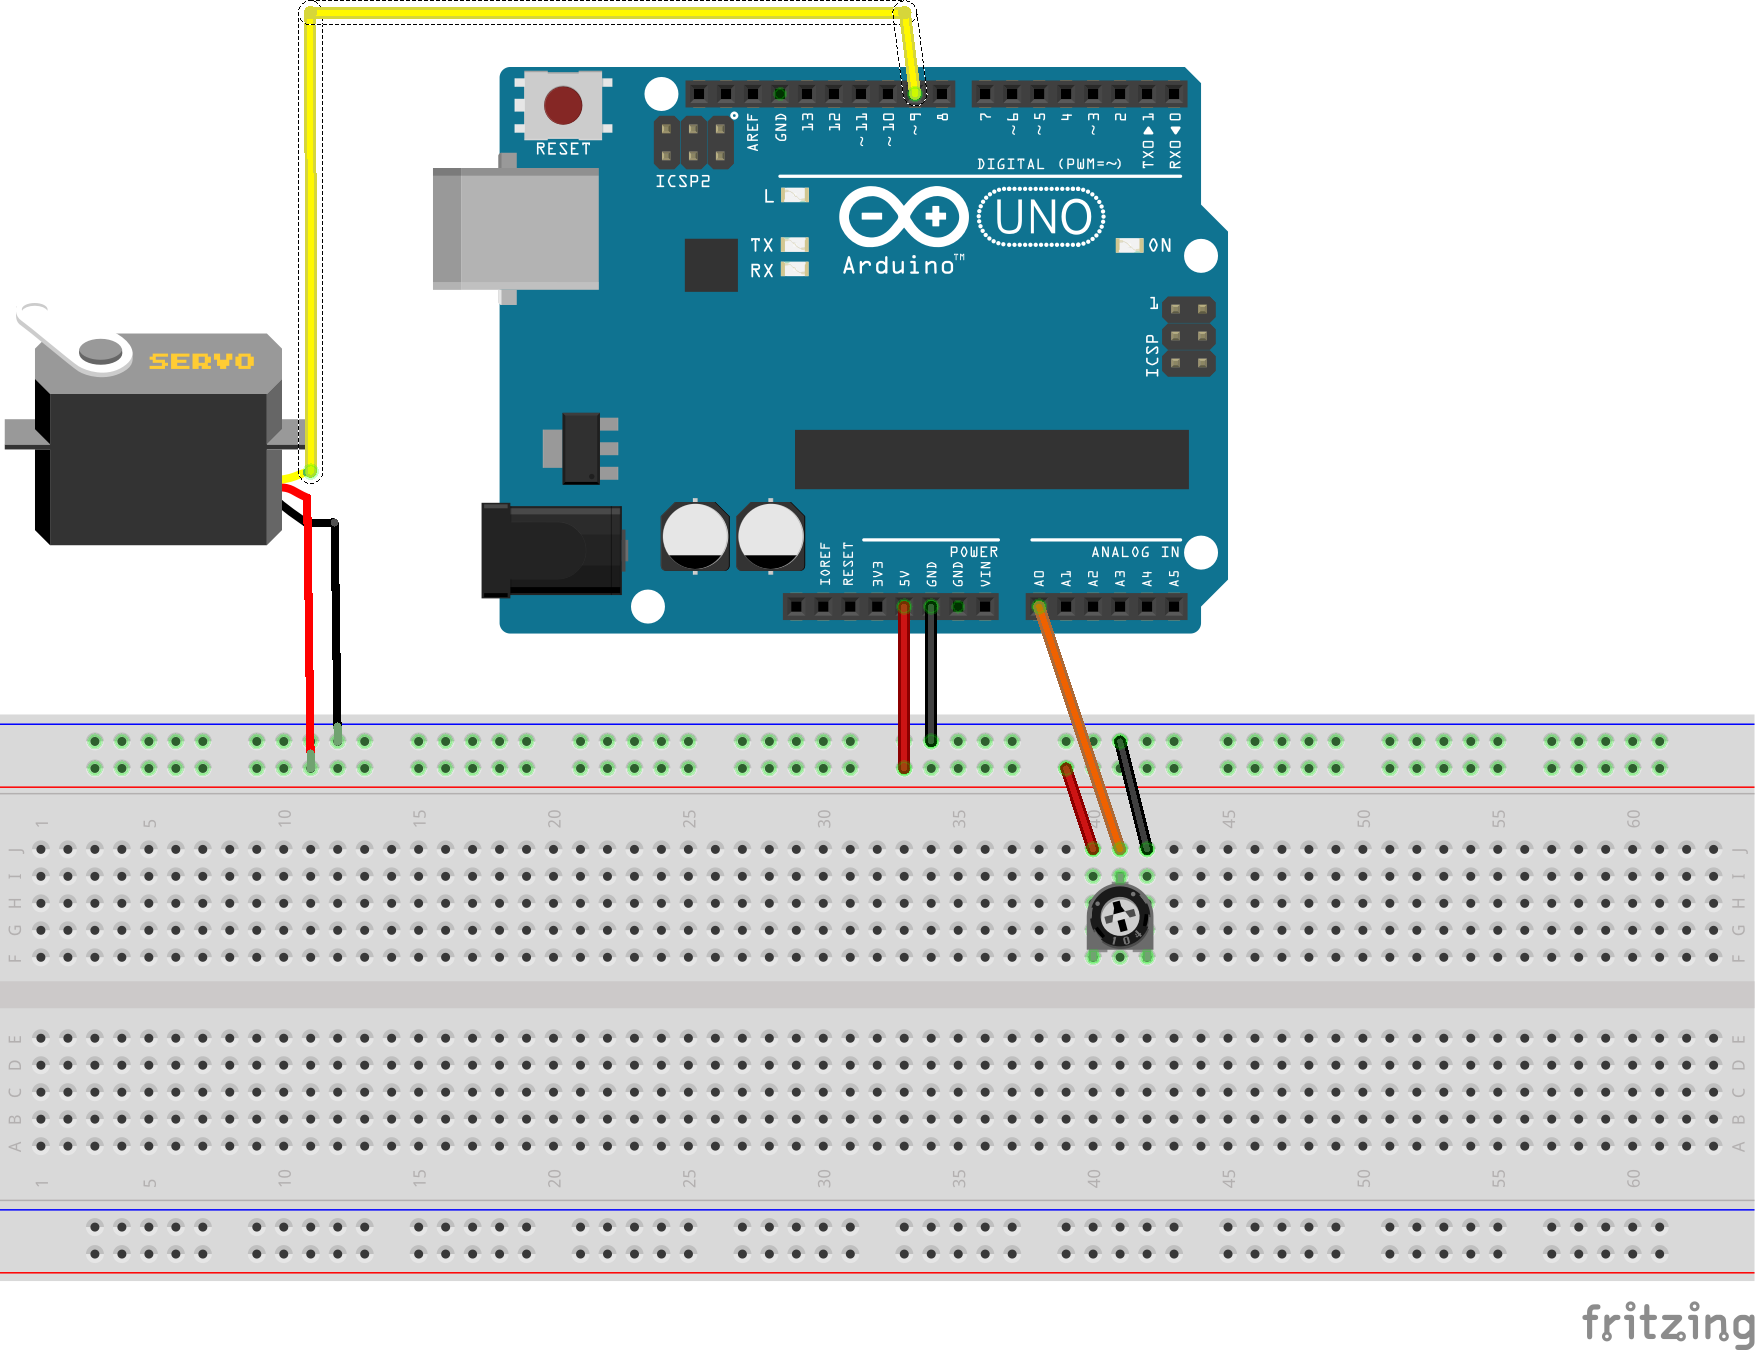 HEART RATE MONITORING SYSTEM USING FINGER